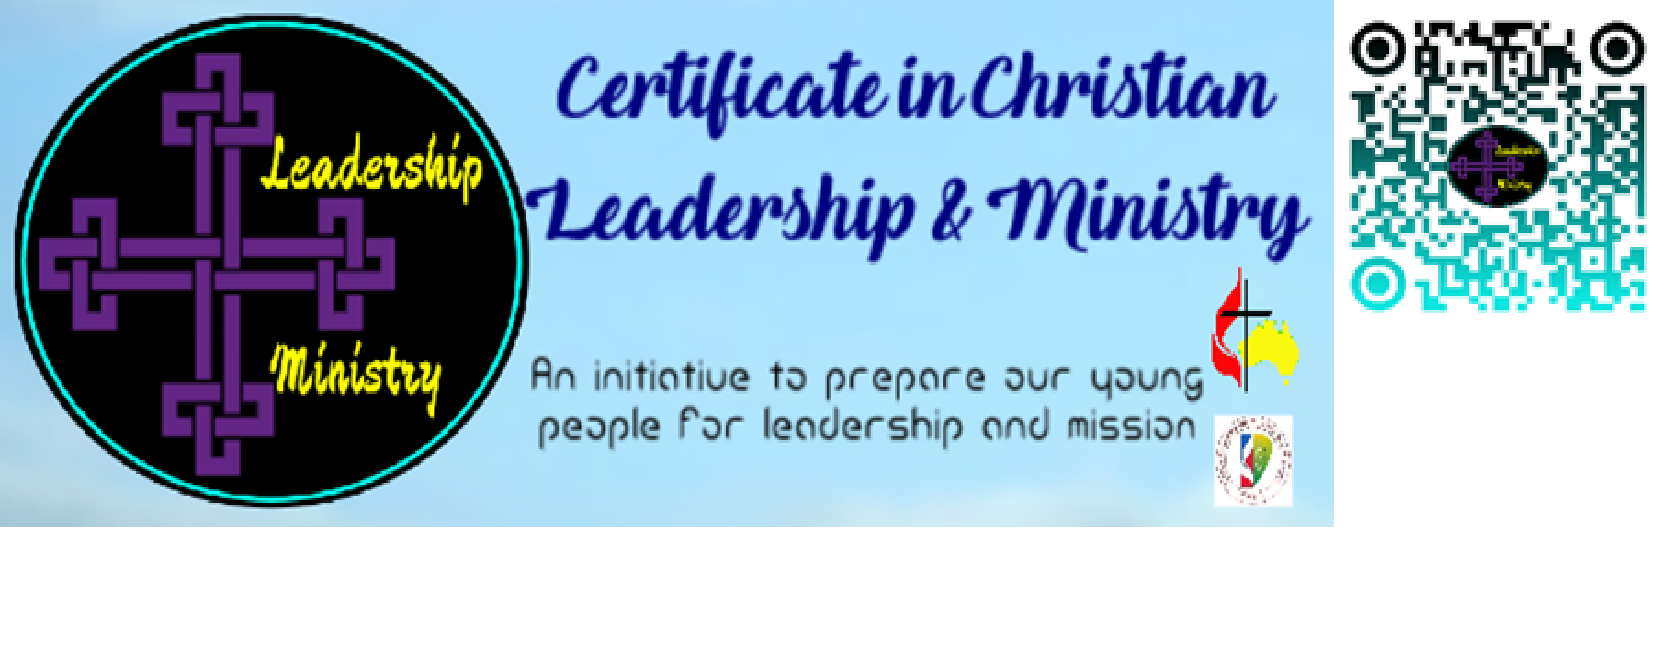 Certificate in Christian Leadership & Ministry - Christian Worship